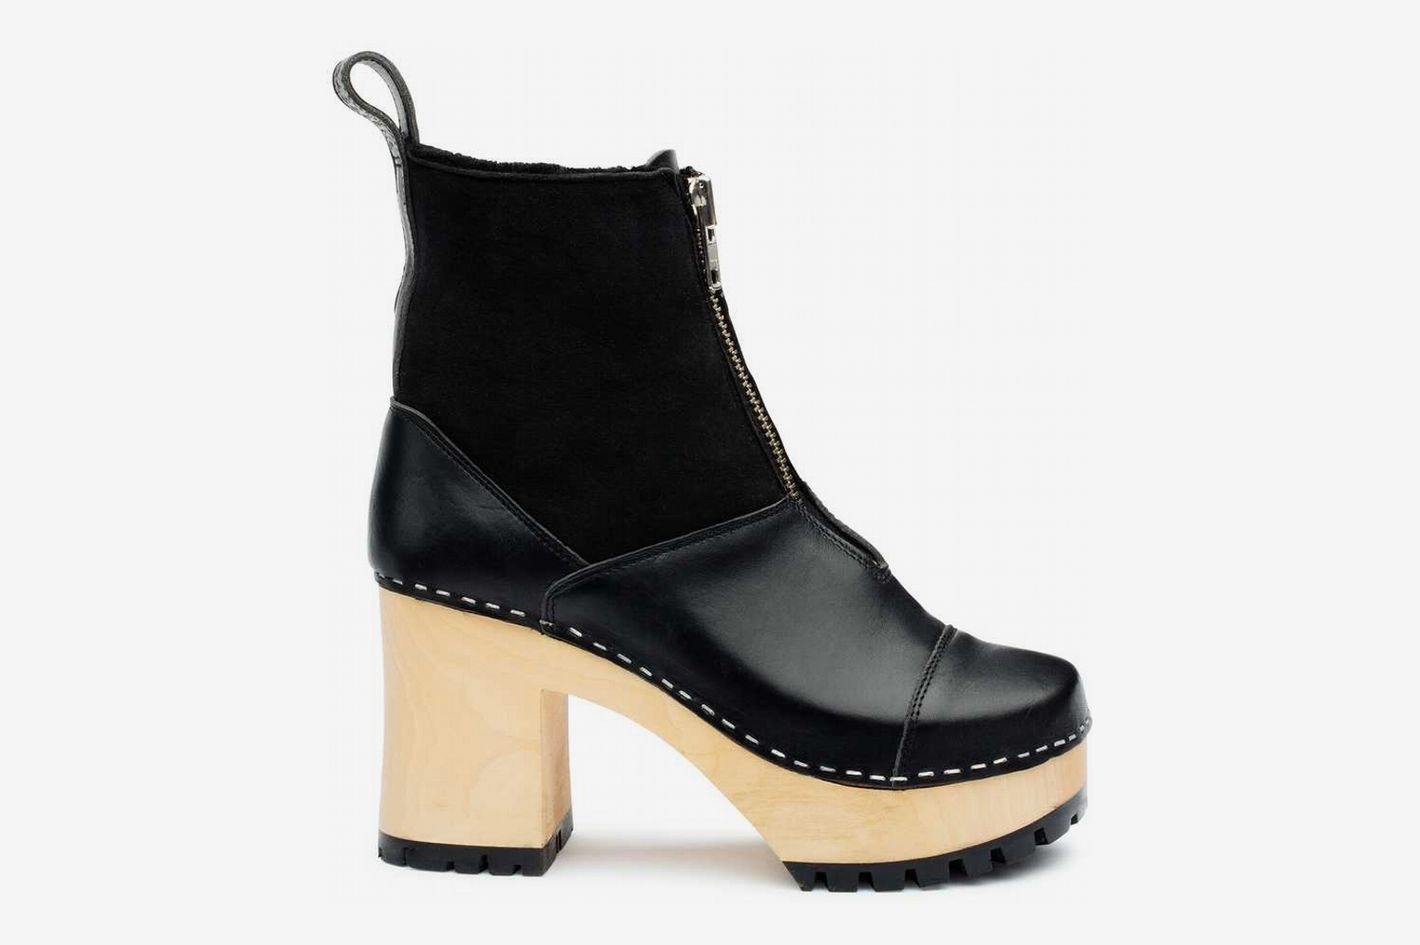 Grunge Boot Shearling